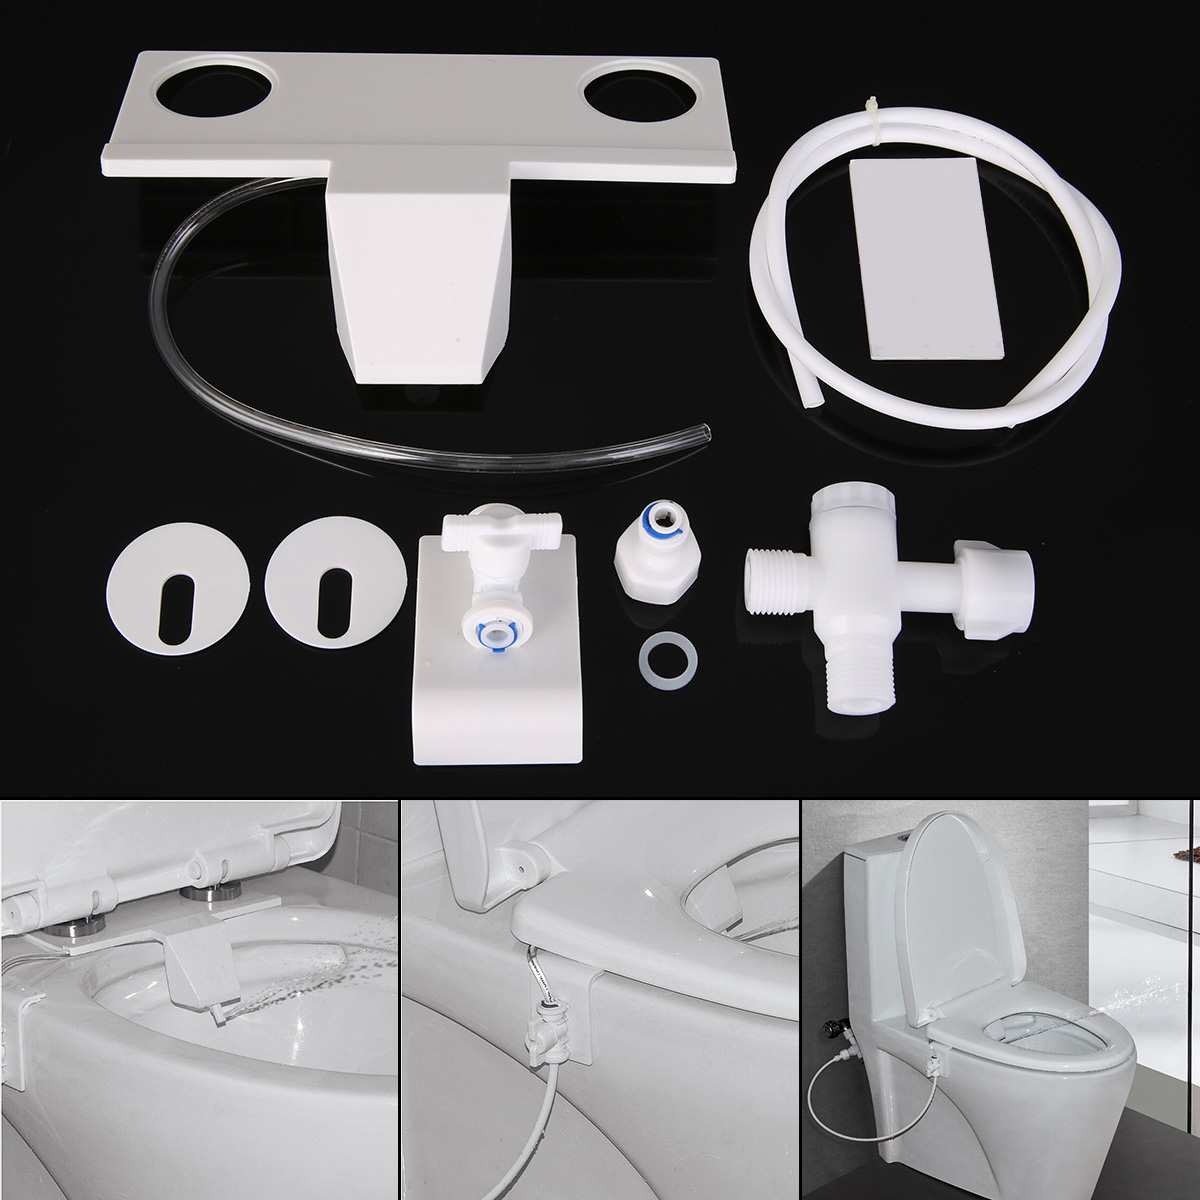 цены Mayitr 1set Toilet Bidet Water Spray Seat Non-Electric Toilet Sprayer Nozzle Attachment Hand Operation Bidet Parts New